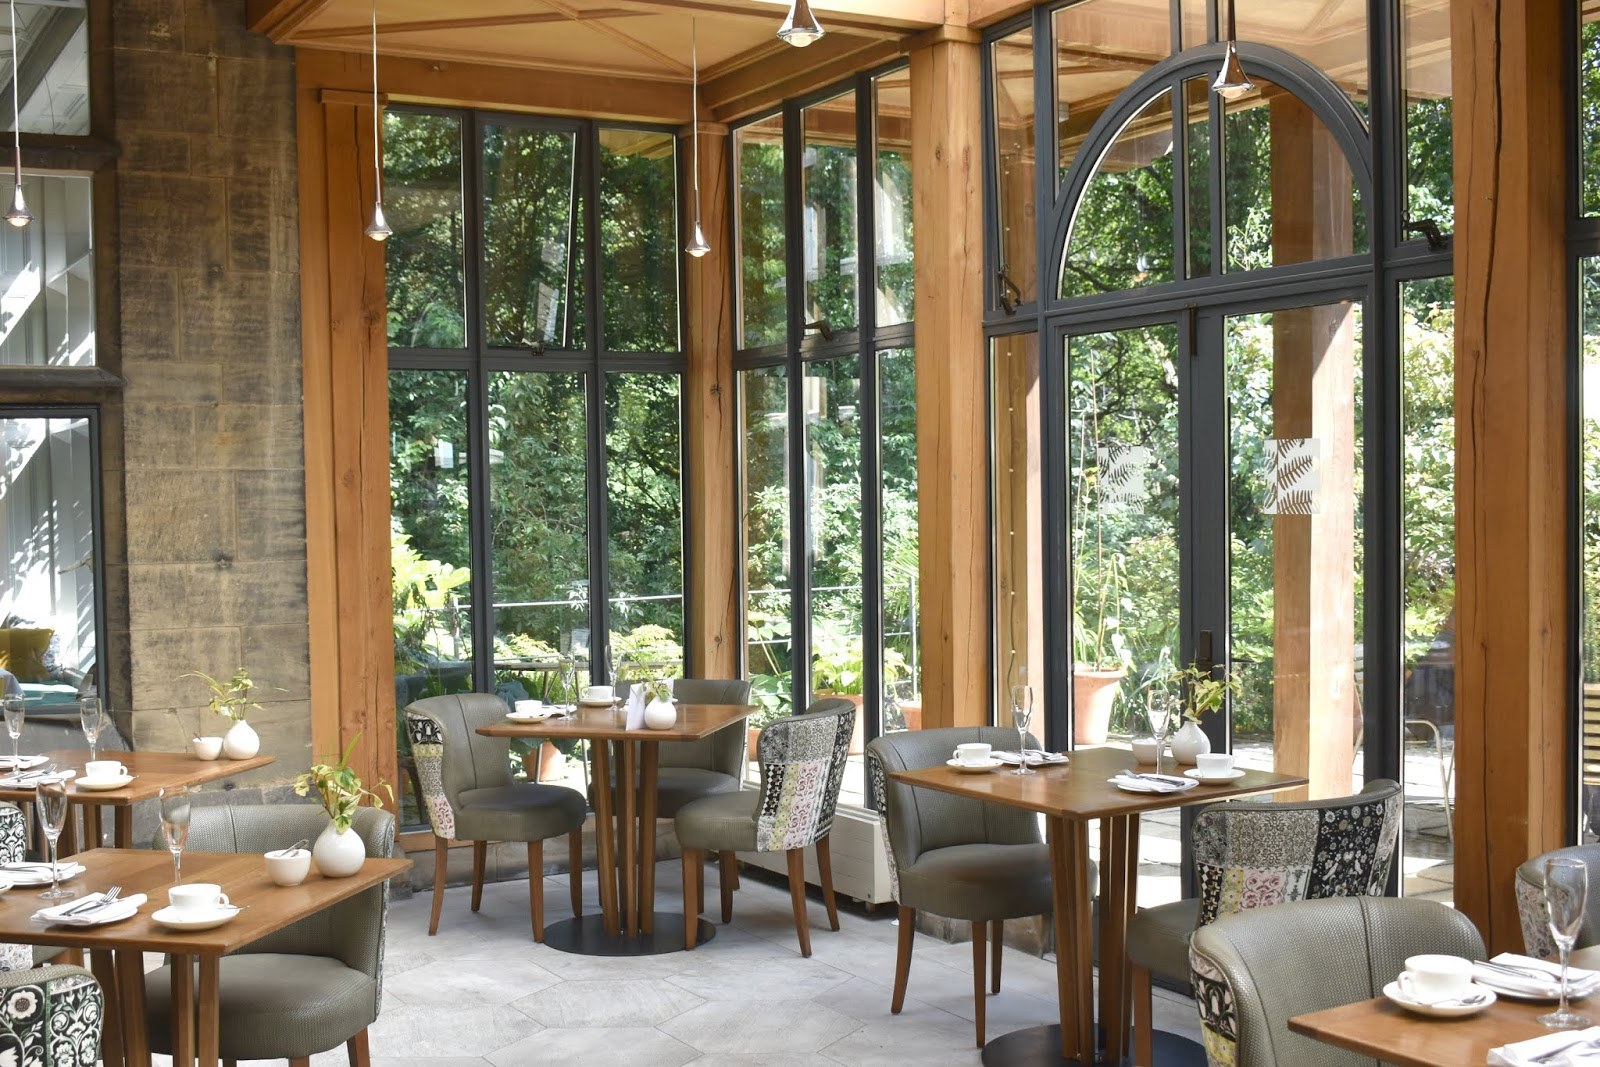 Lunch and a Refurbishment at Jesmond Dene House